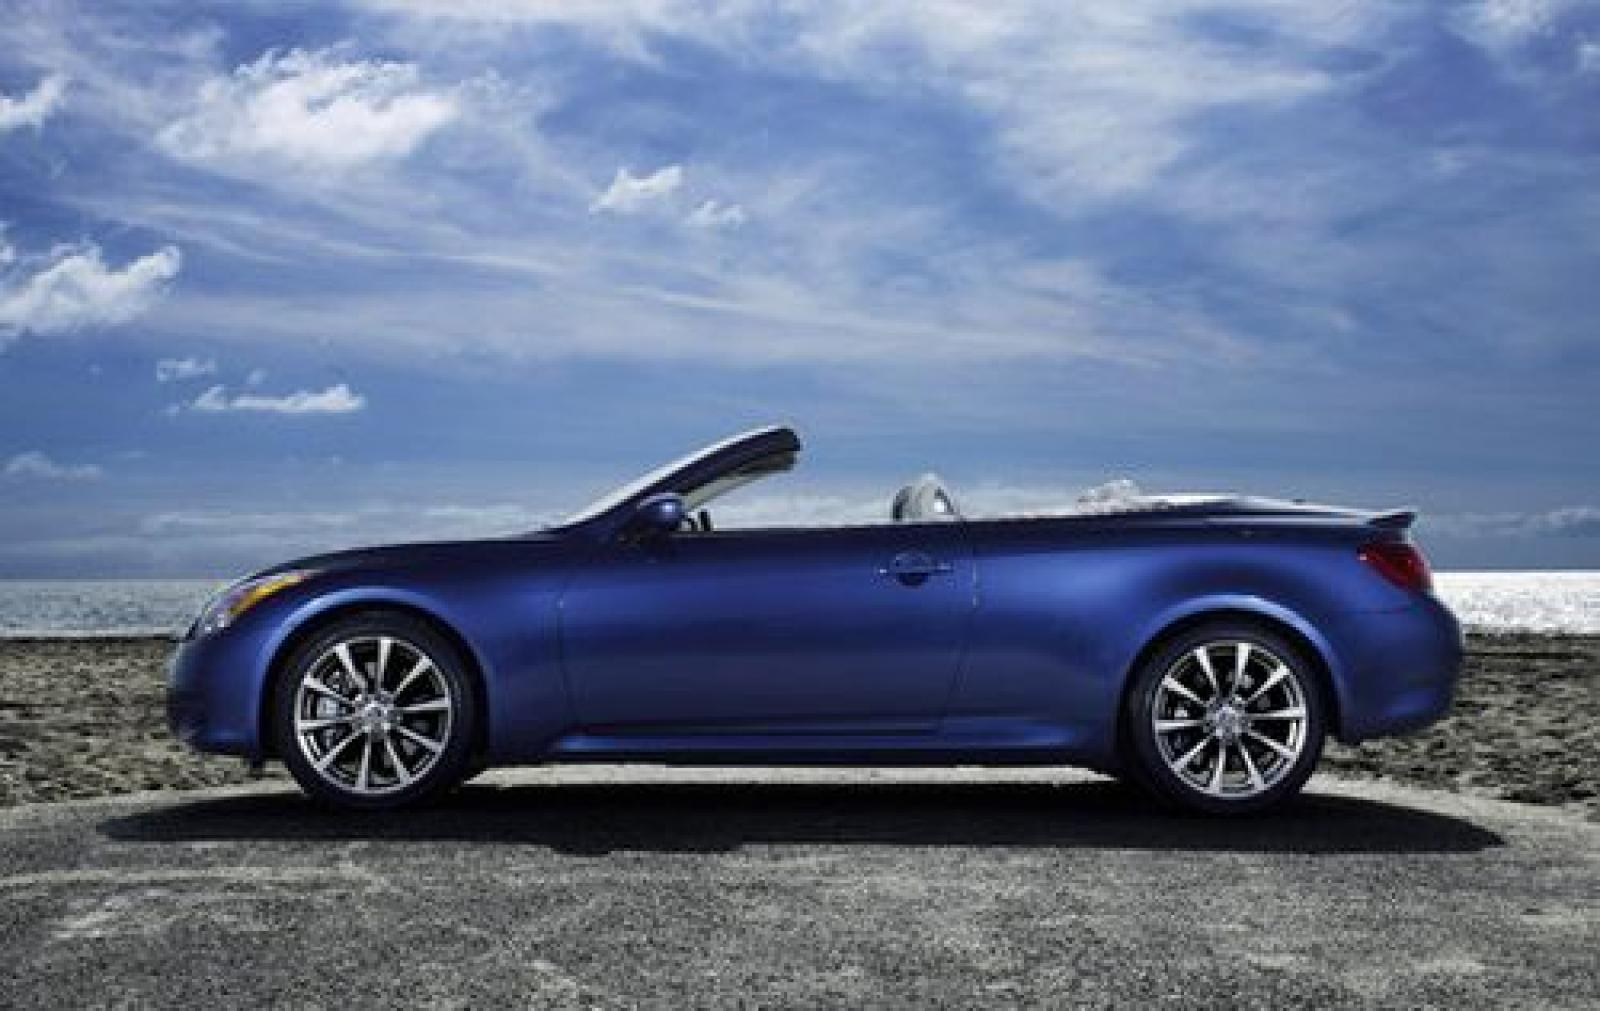 2015 infiniti q60 convertible information and photos zombiedrive. Black Bedroom Furniture Sets. Home Design Ideas